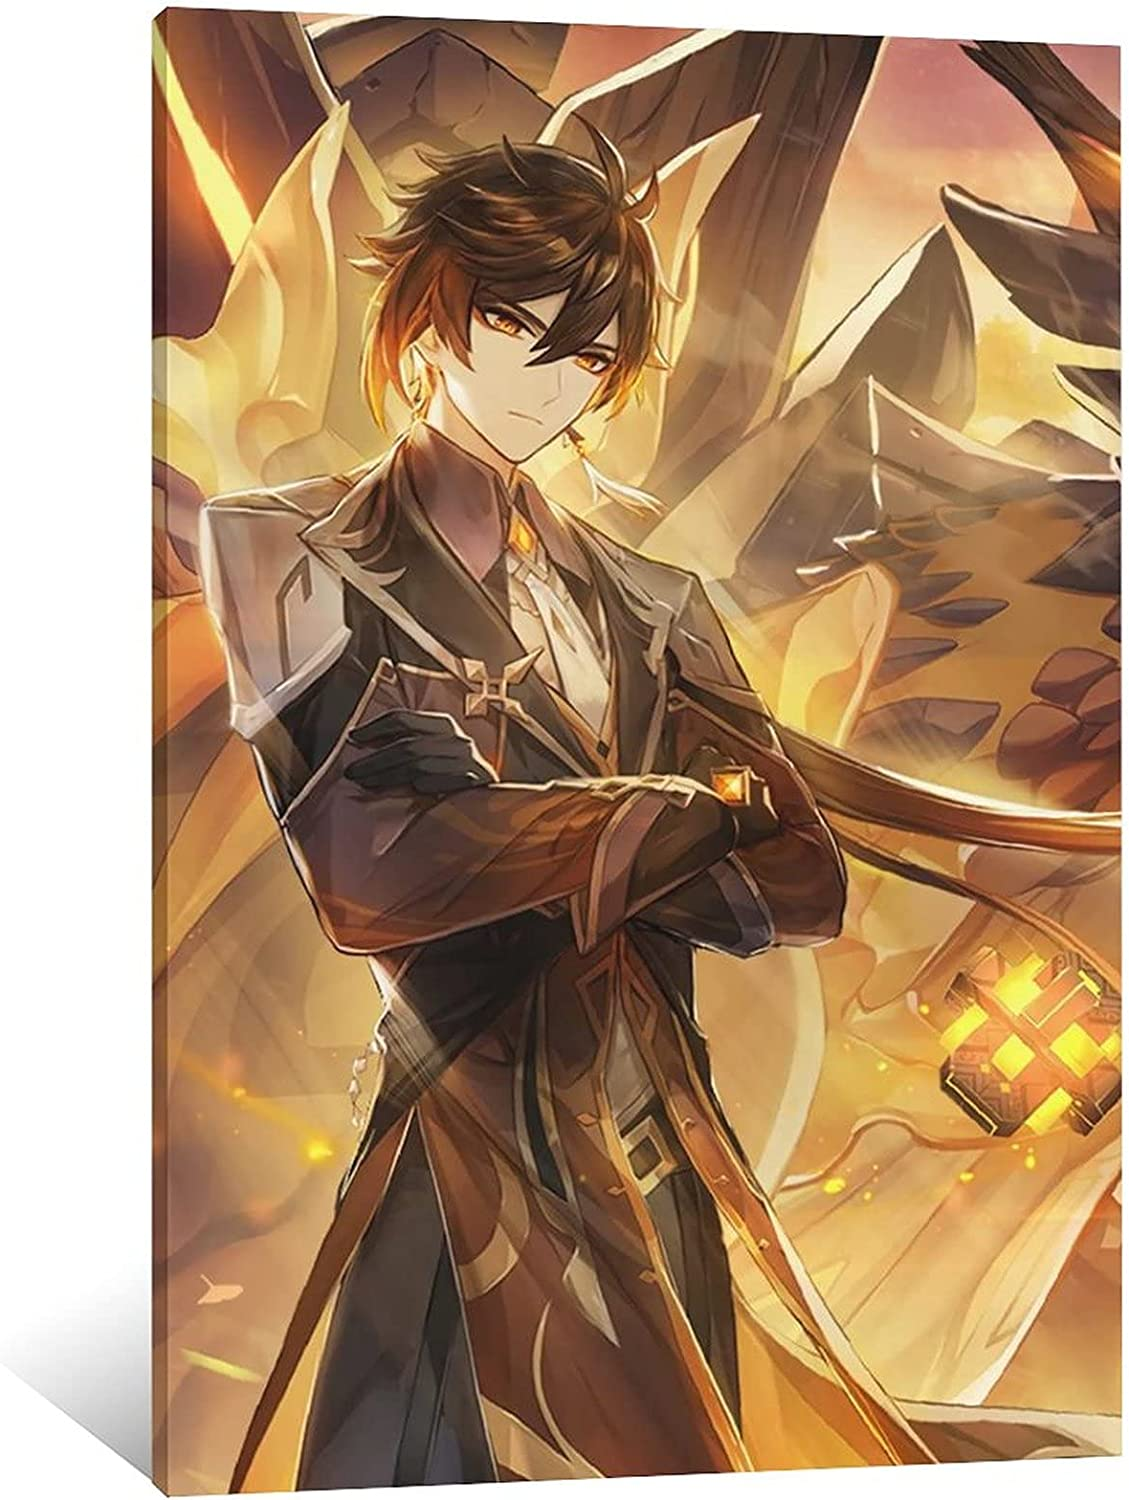 ZHDC Genshin Impact Game Canva San Free Shipping New Diego Mall Poster Decorative Painting